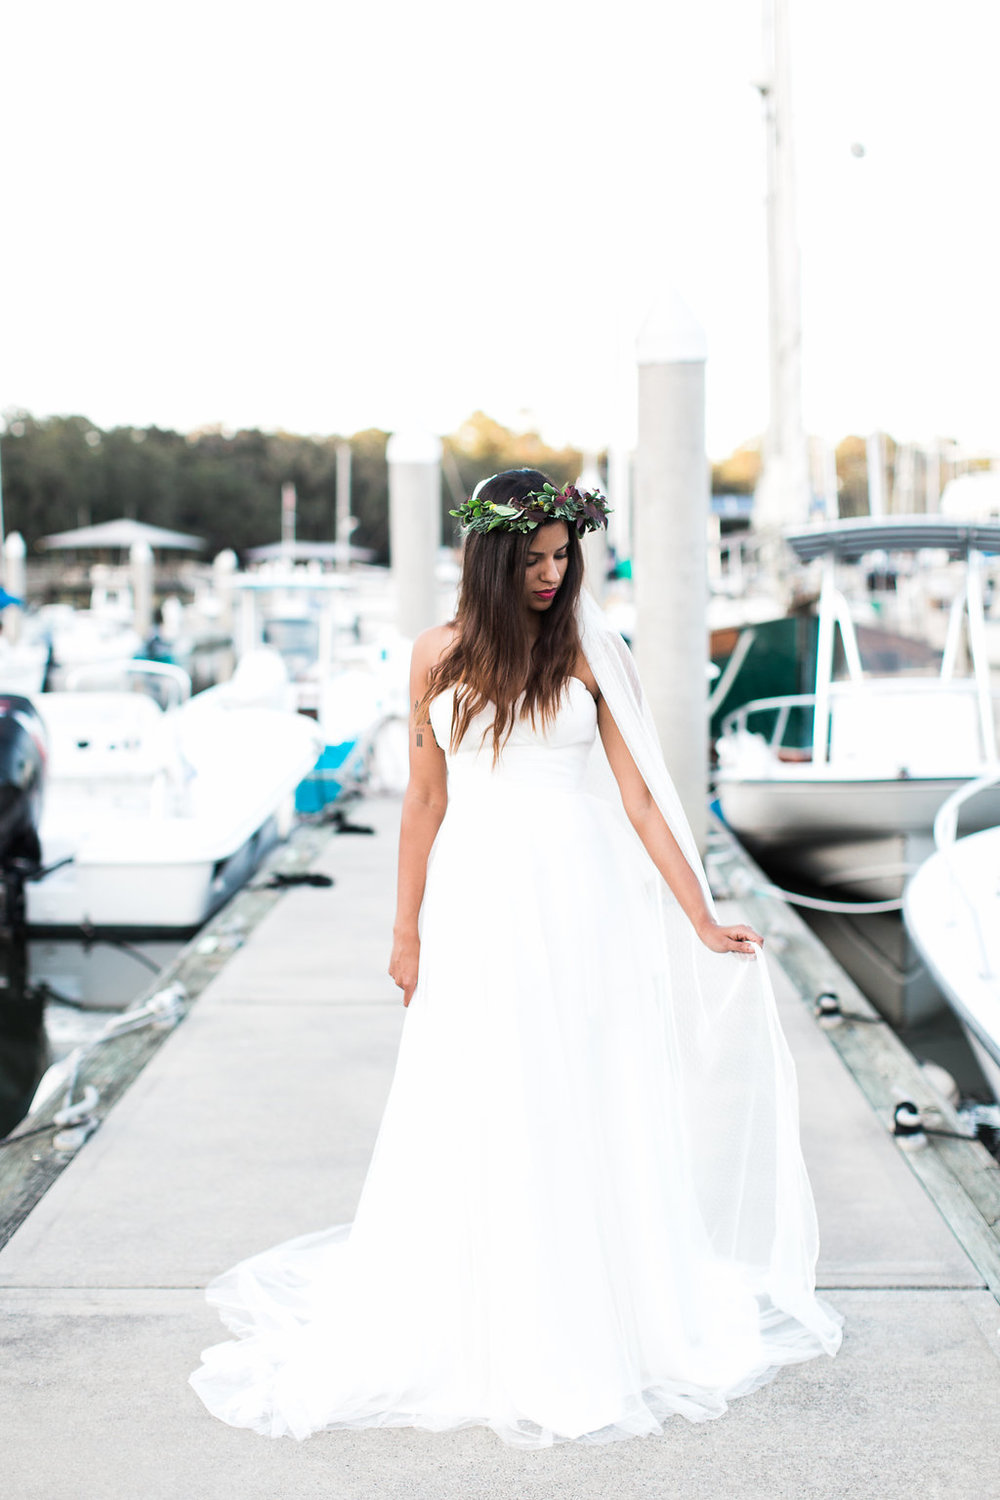 apt-b-photography-ti-adora-7655-point-desprit-wedding-dress-swiss-dot-wedding-dress-marina-wedding-coastal-wedding-ivory-and-beau-bridal-boutique-savannah-wedding-dresses-savannah-bridal-gowns-adele-amelia-savanah-florist-11.jpg